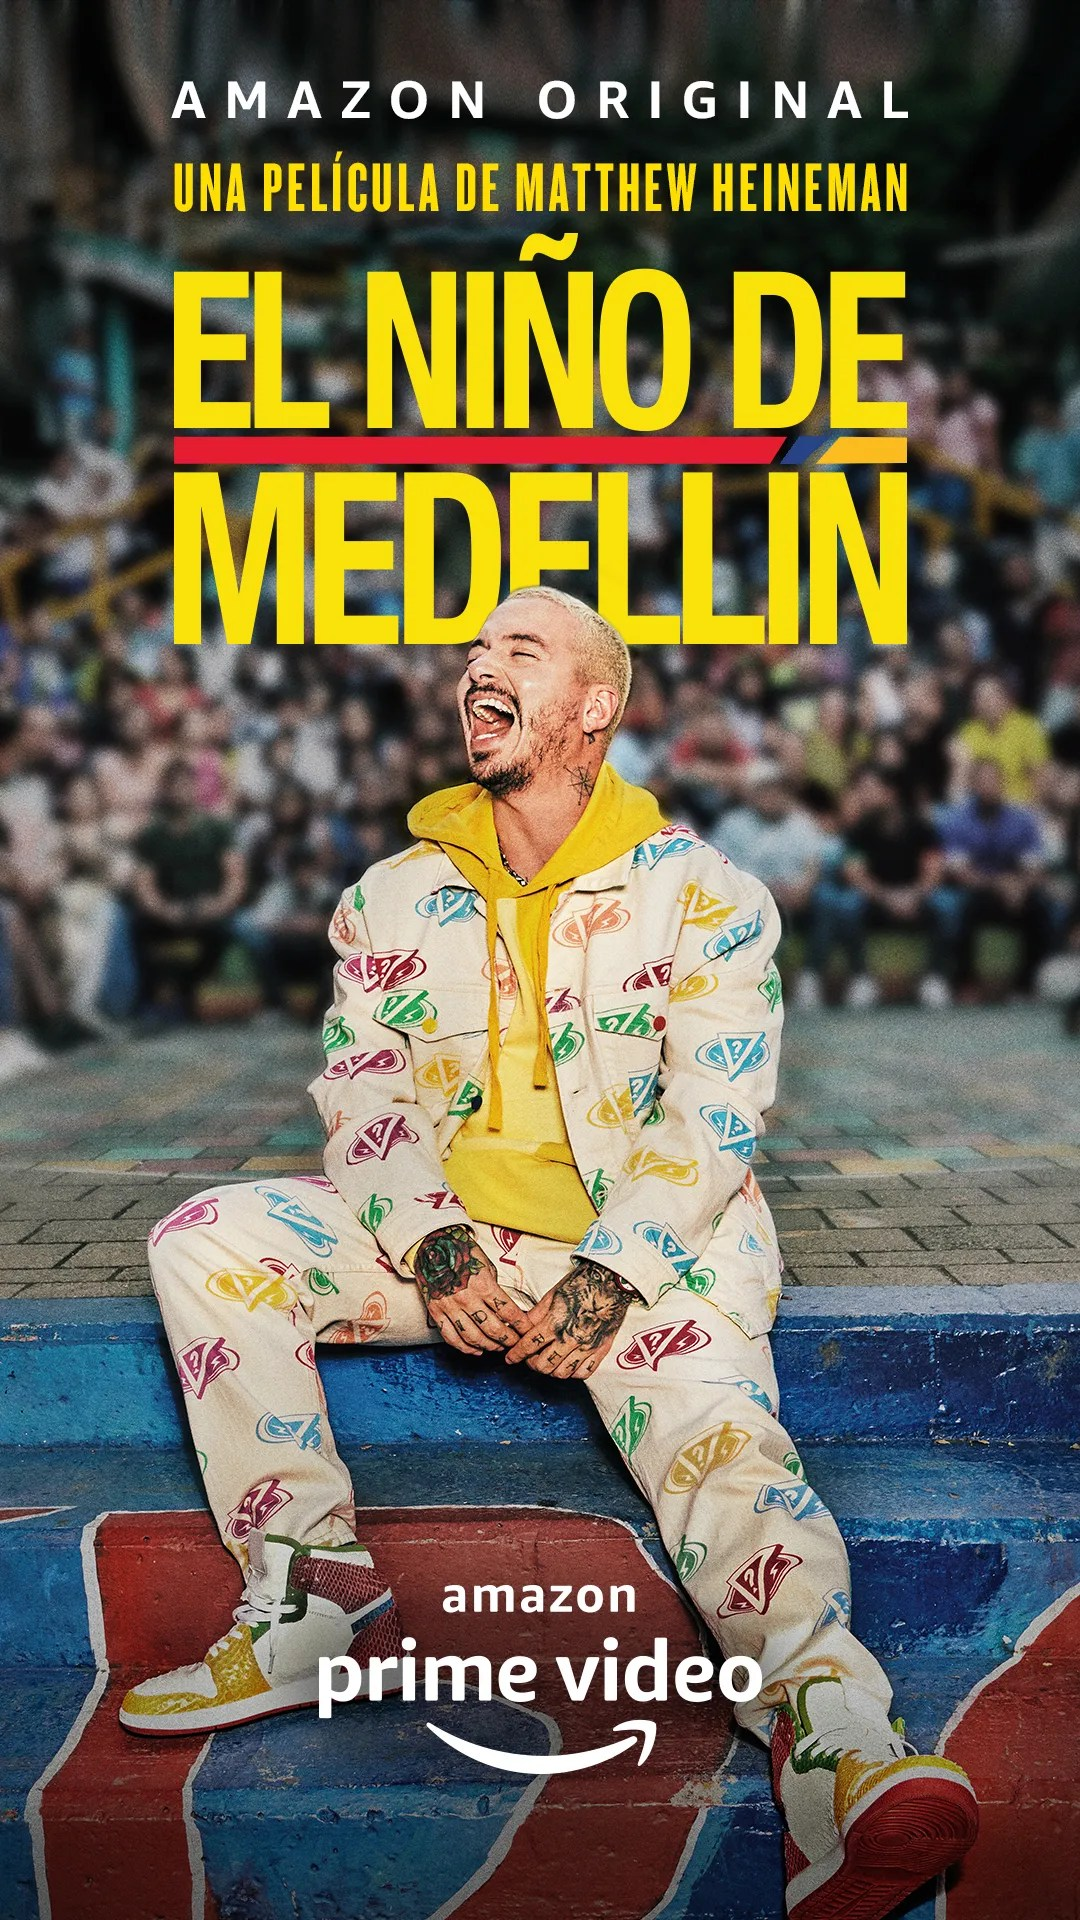 J Balvin documental Amazon Prime Video | El Niño de Medellín | Estreno streaming película cantante colombiano | RedGol